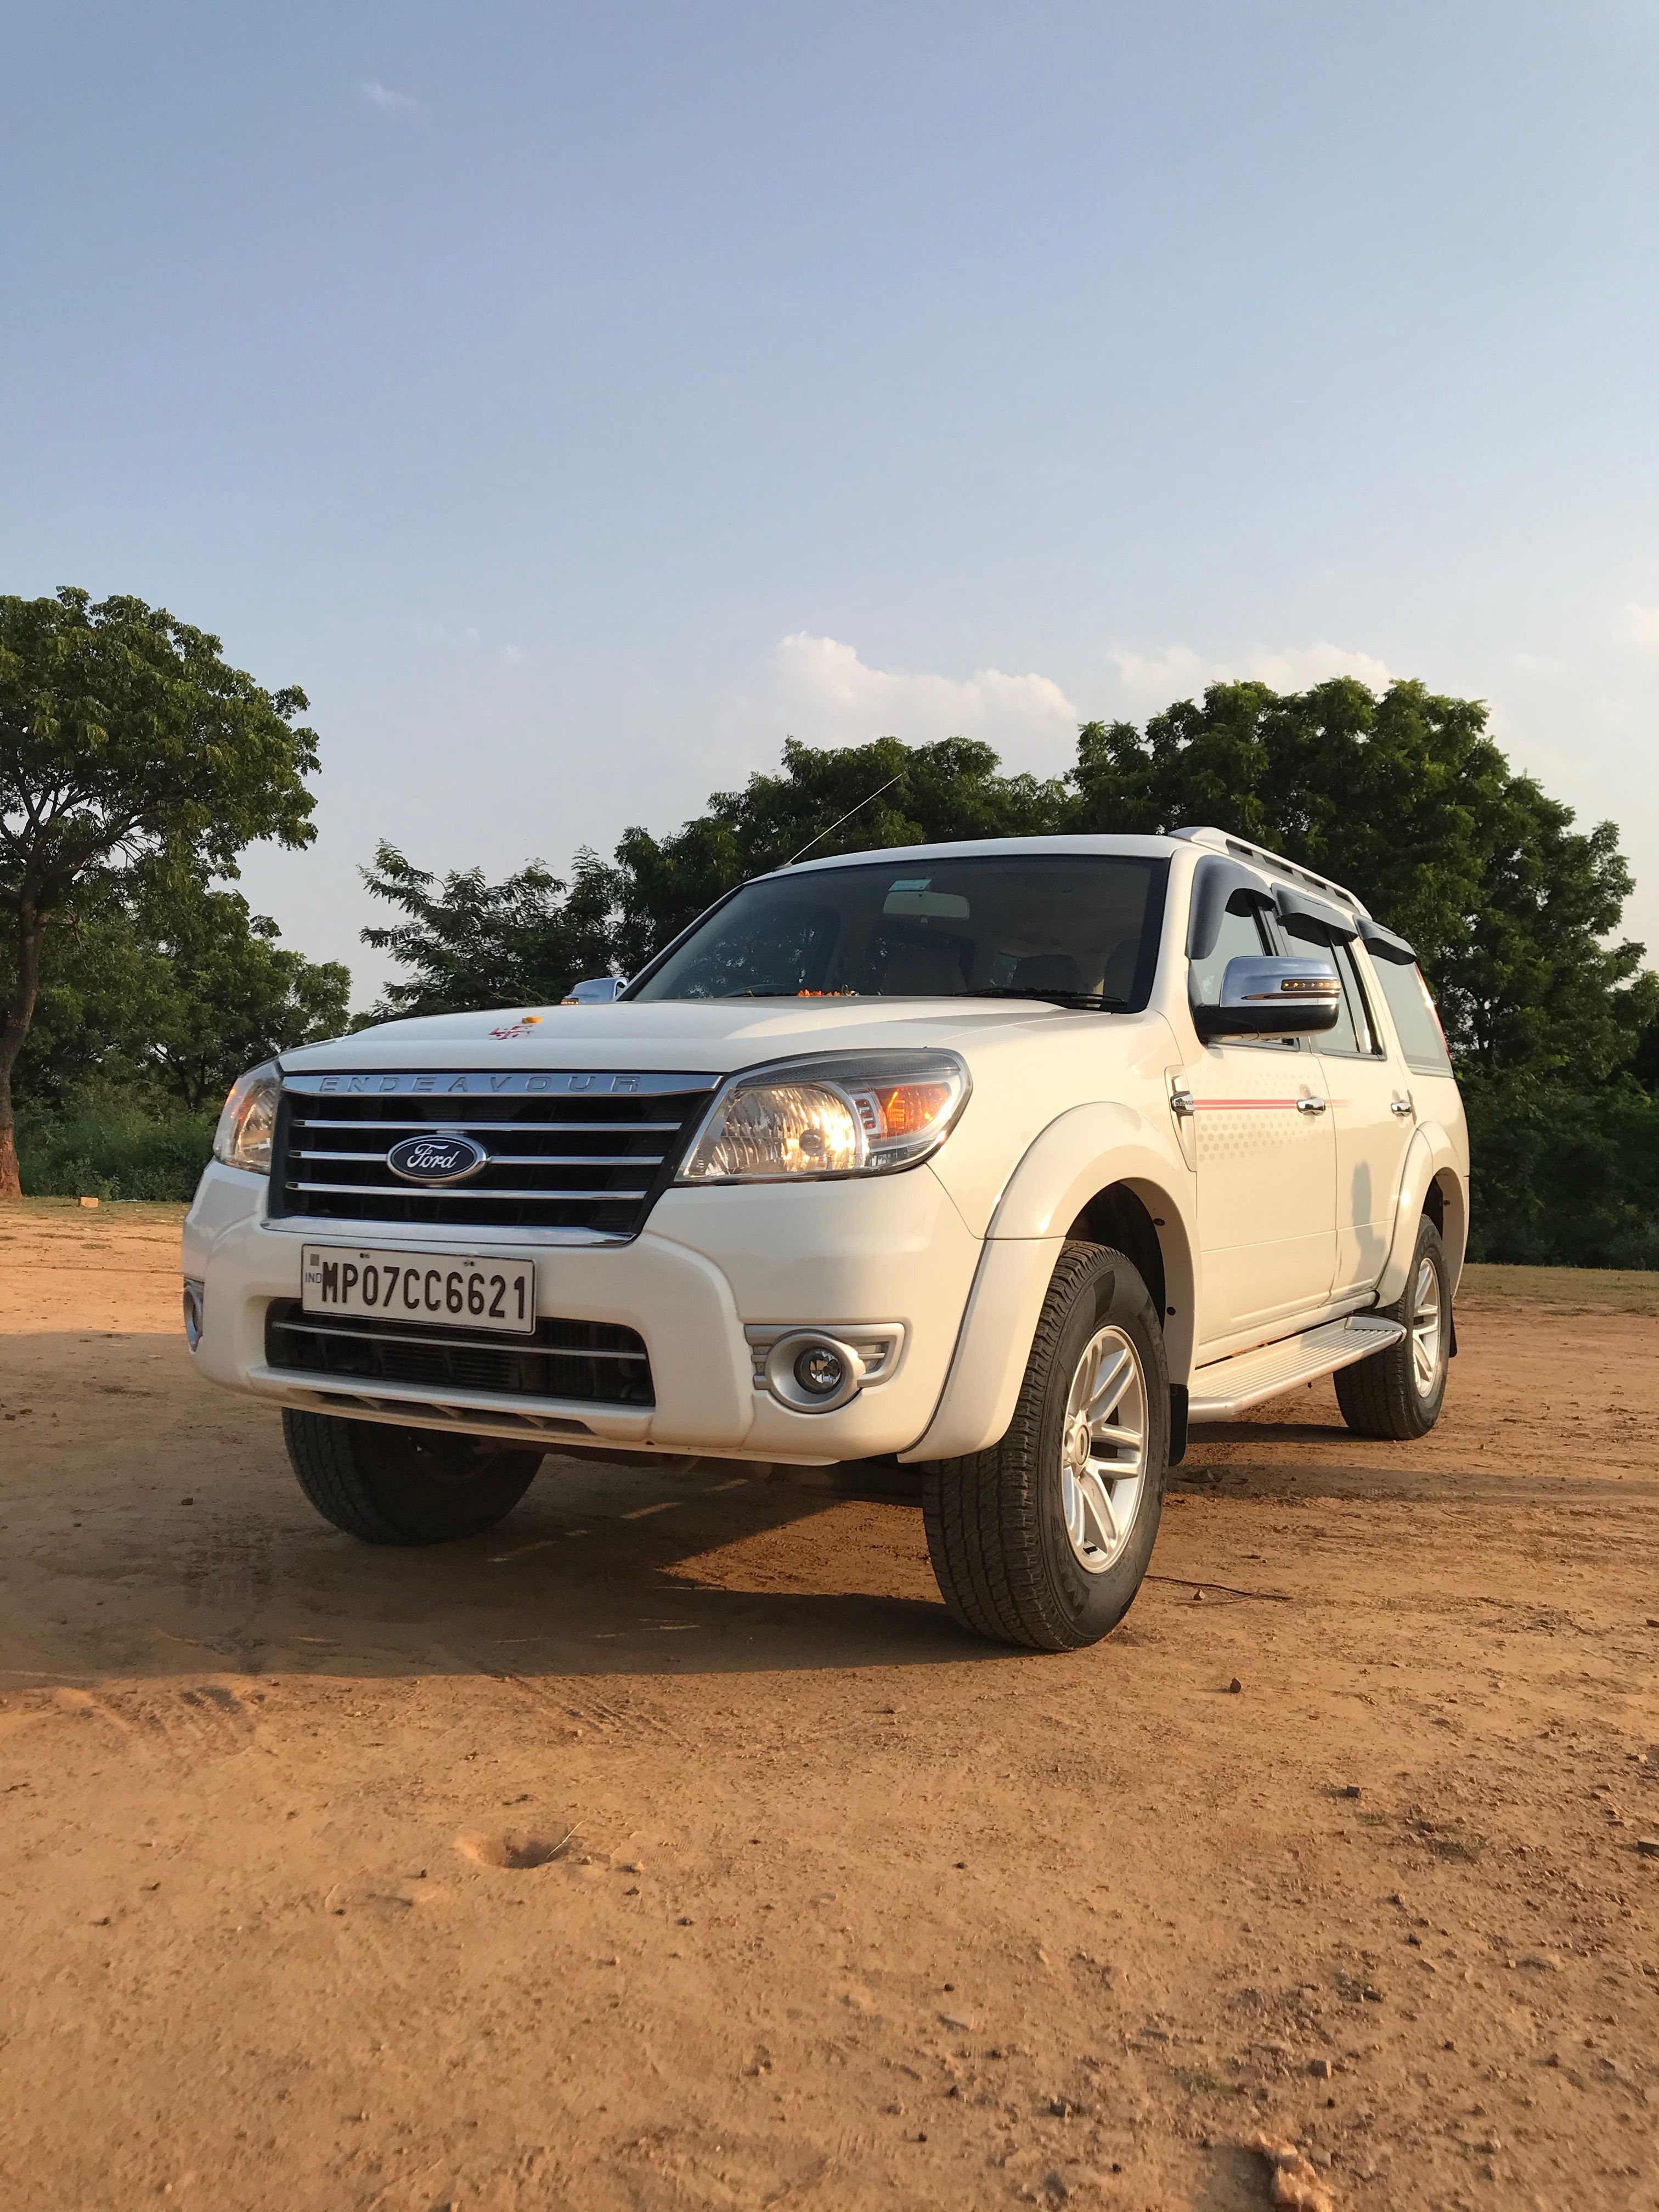 Ford Endeavour 4x4 5 Speed Automatic 2011 Real Life Review